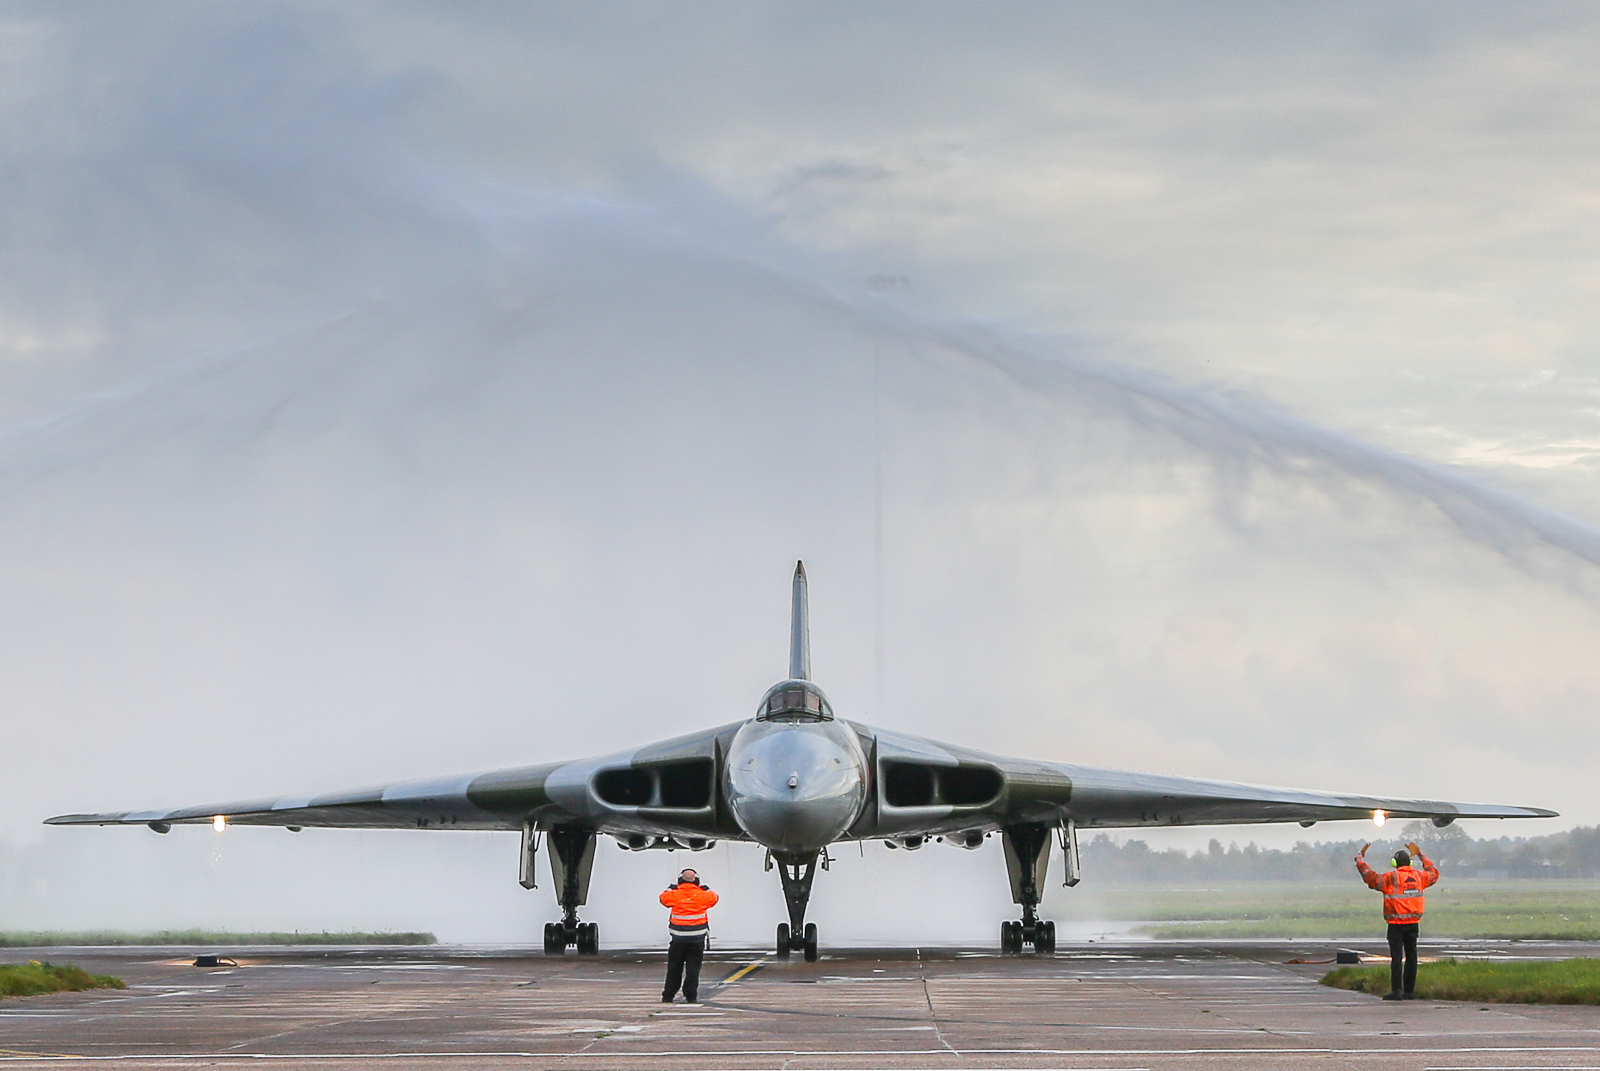 Take a bow XH558... it's been magic having you in the air these past few years. (photo by Steven Comber)